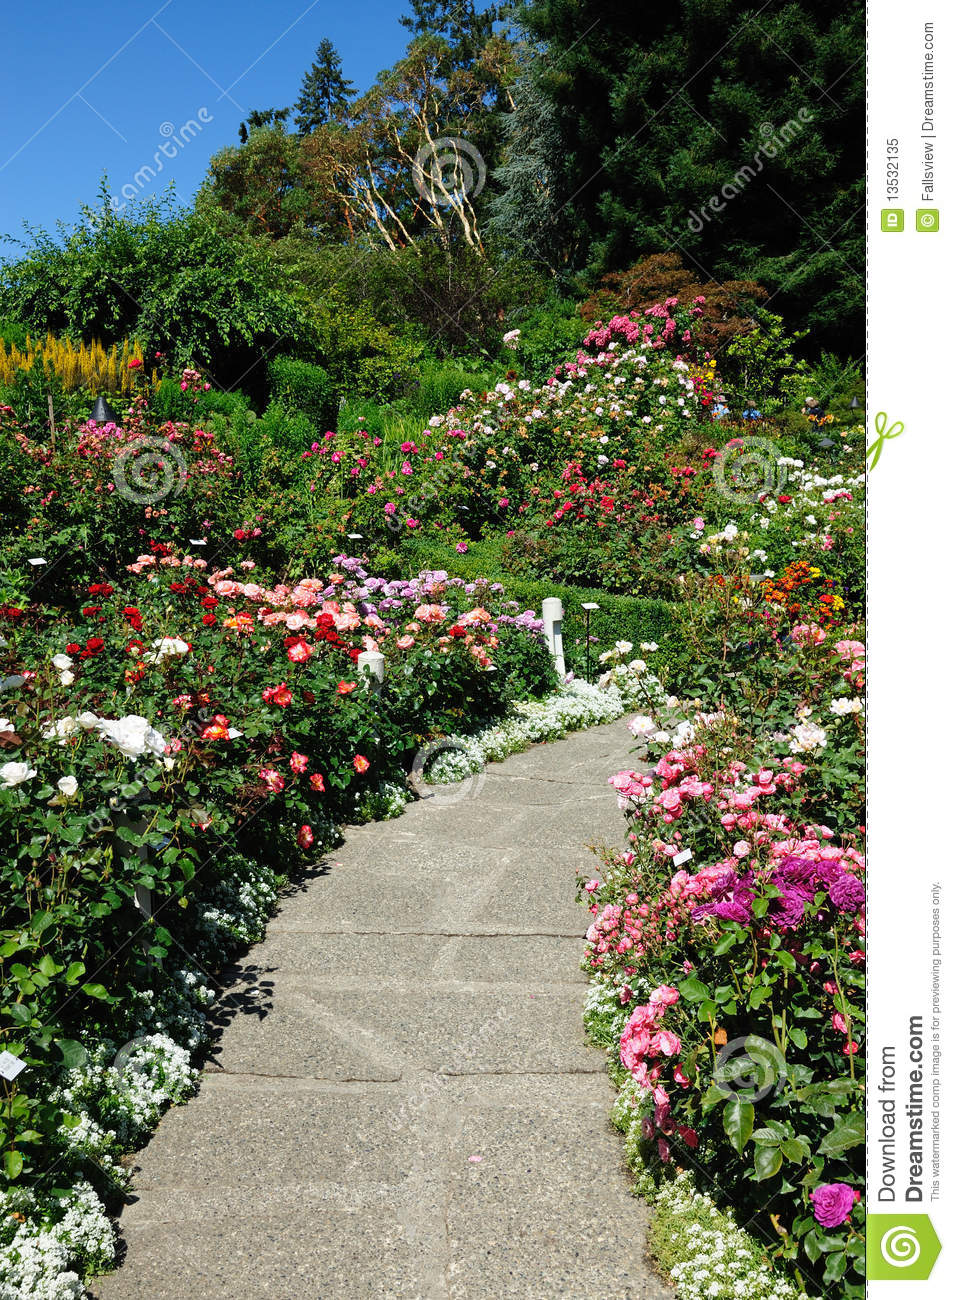 Gardens path royalty free stock photo image 13532135 for Gardening tools victoria bc